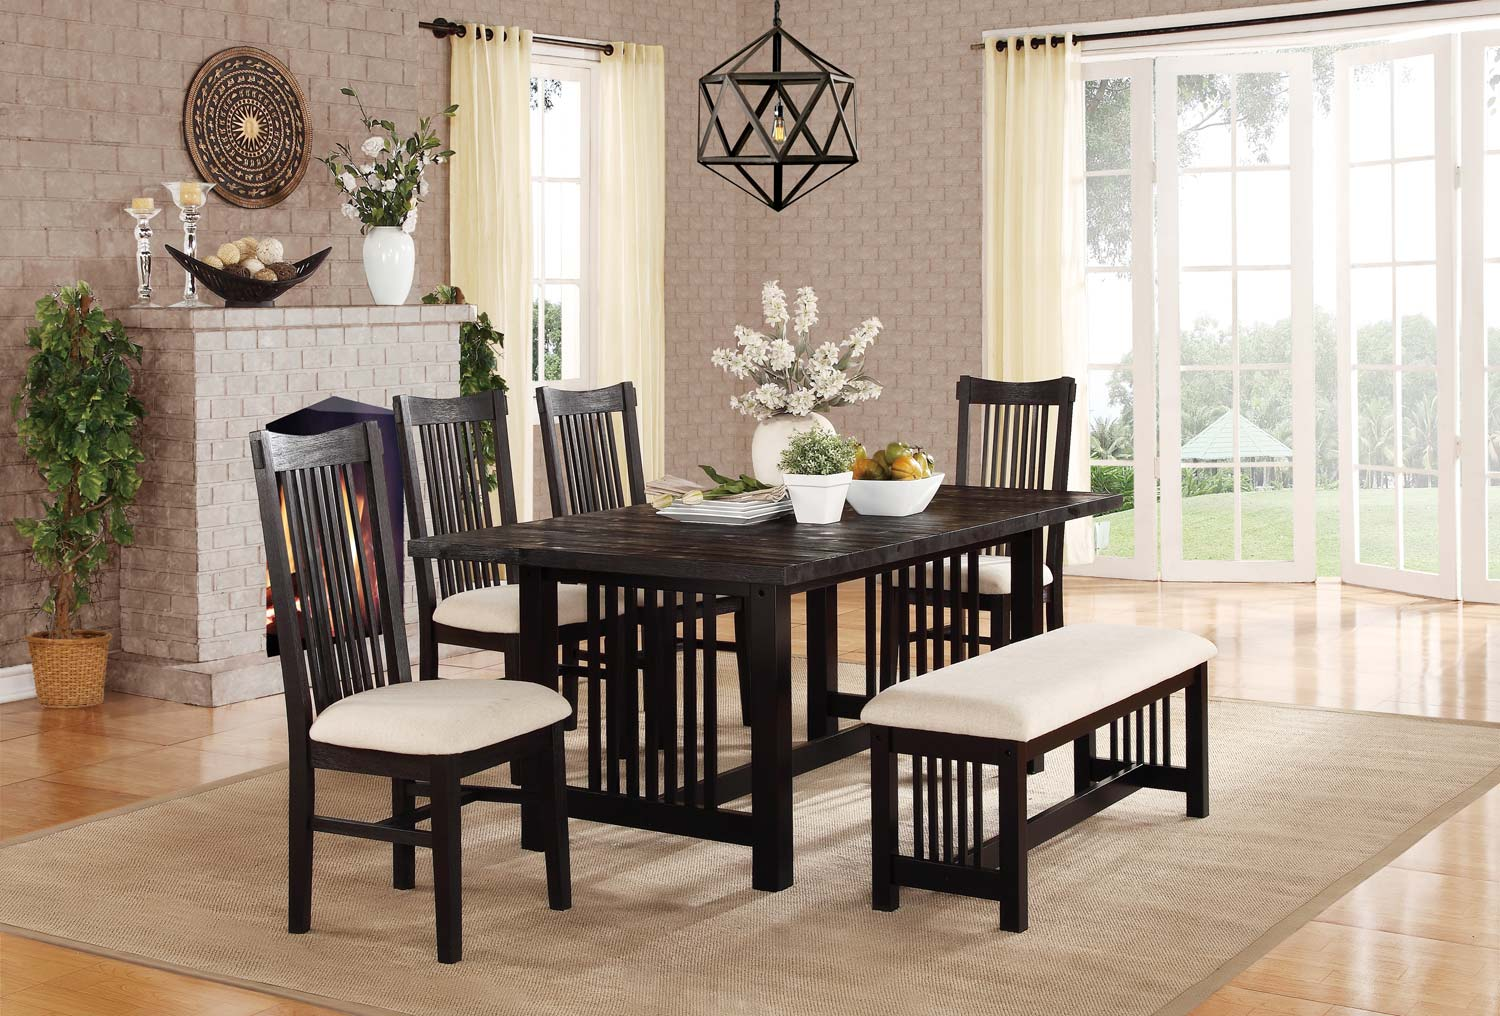 Homelegance Irrington Dining Set - Beige Fabric - Black Driftwood